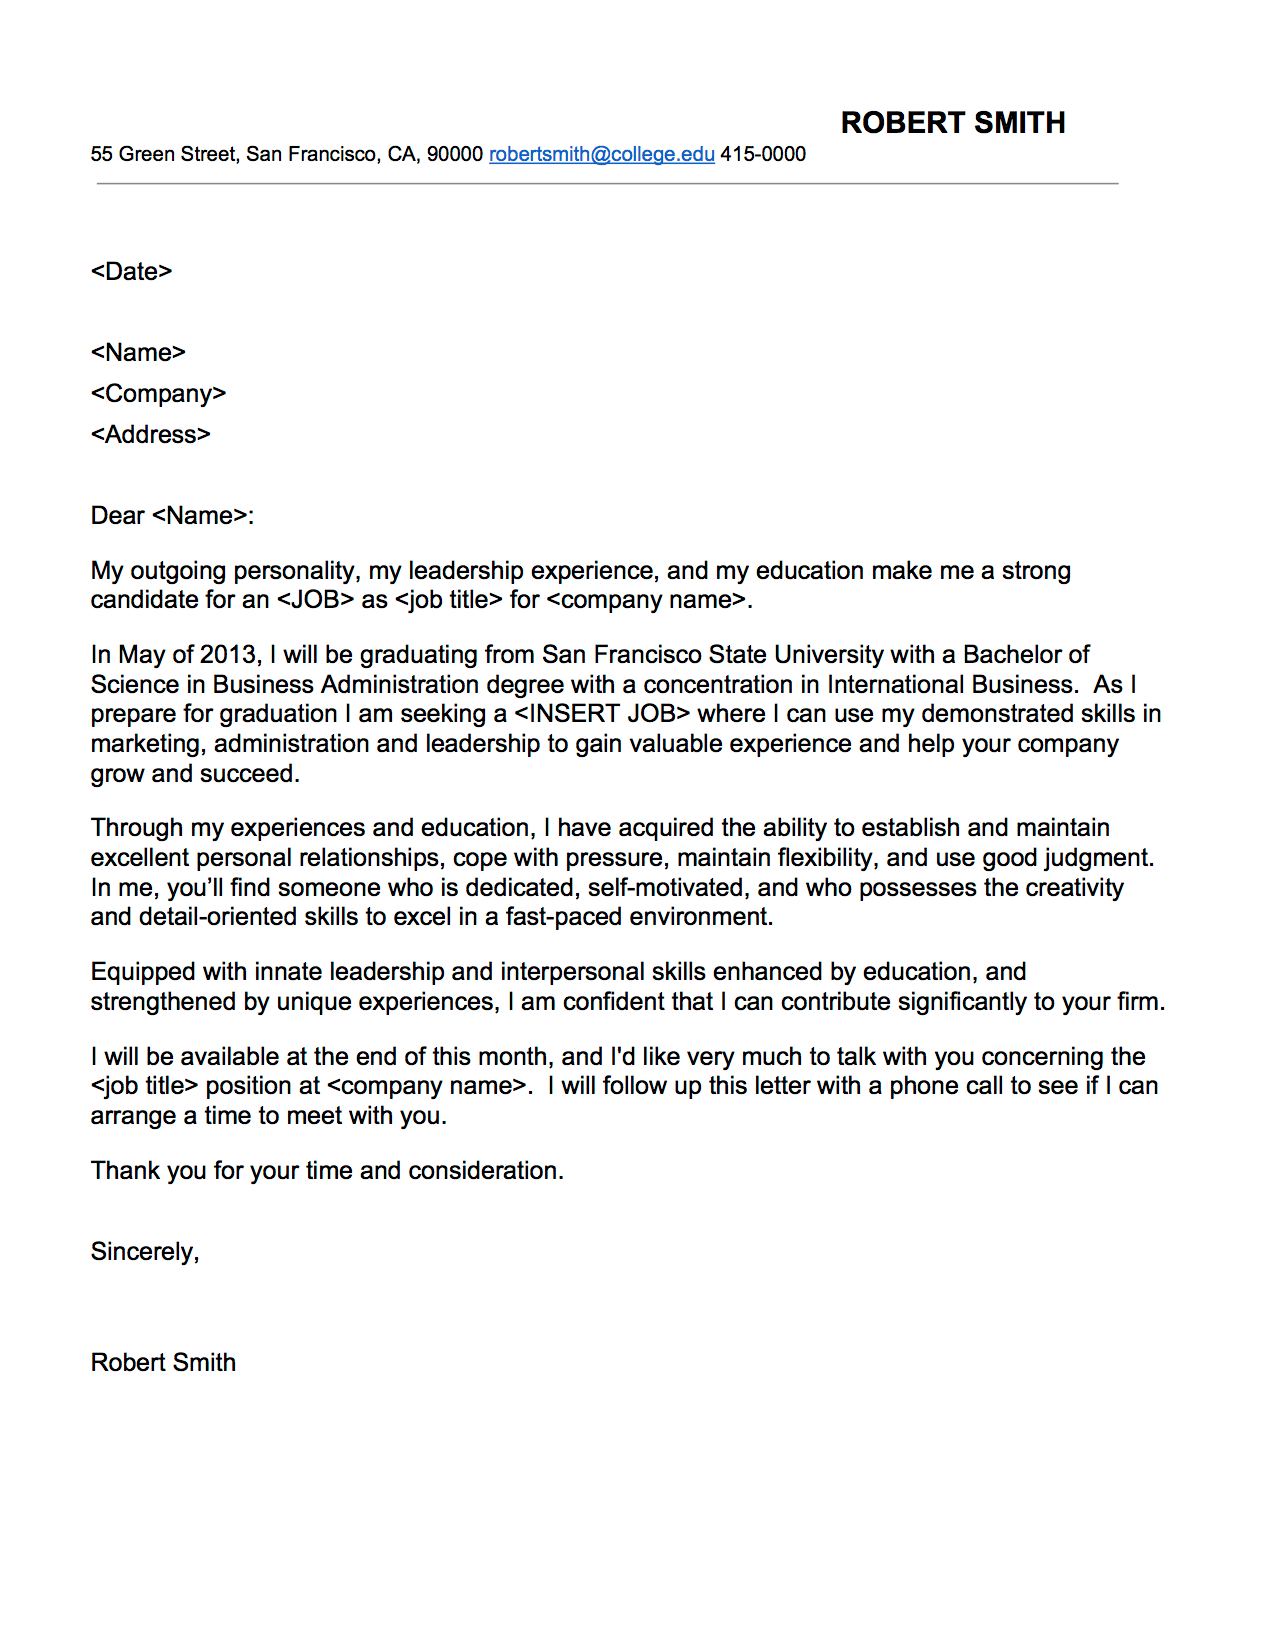 cover letter for advisory job cover letter job cover letter letter ...